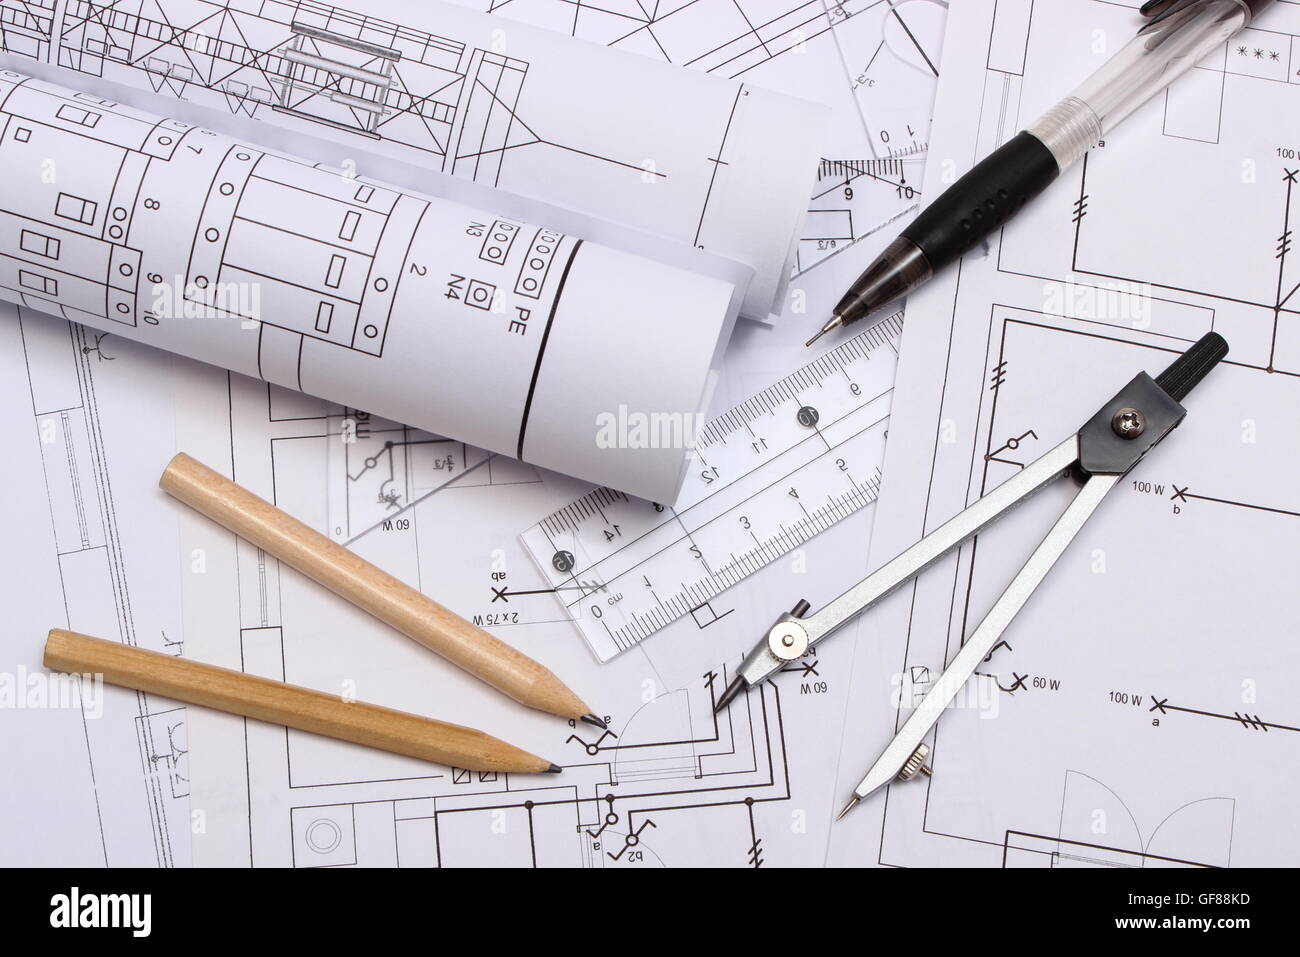 rolls of electrical diagrams and accessories for drawing lying on construction drawing of house drawings